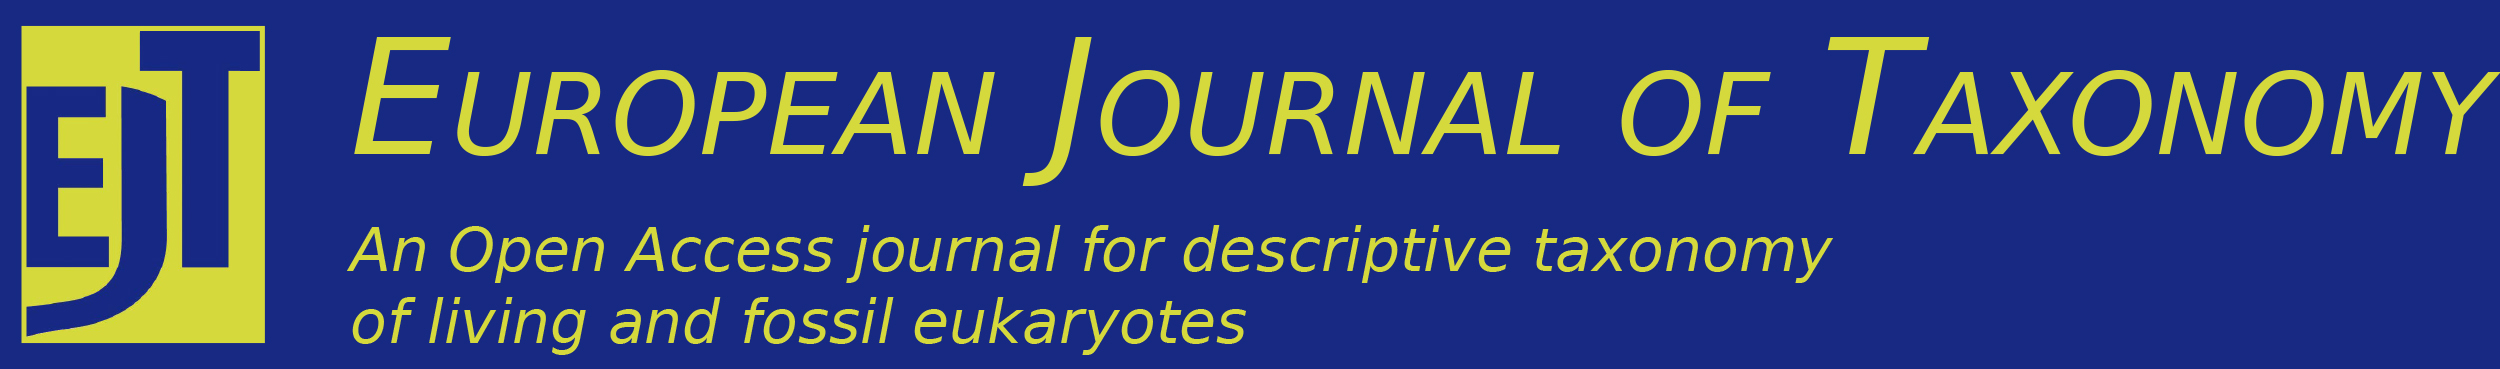 European Journal of Taxonomy logo and journal title